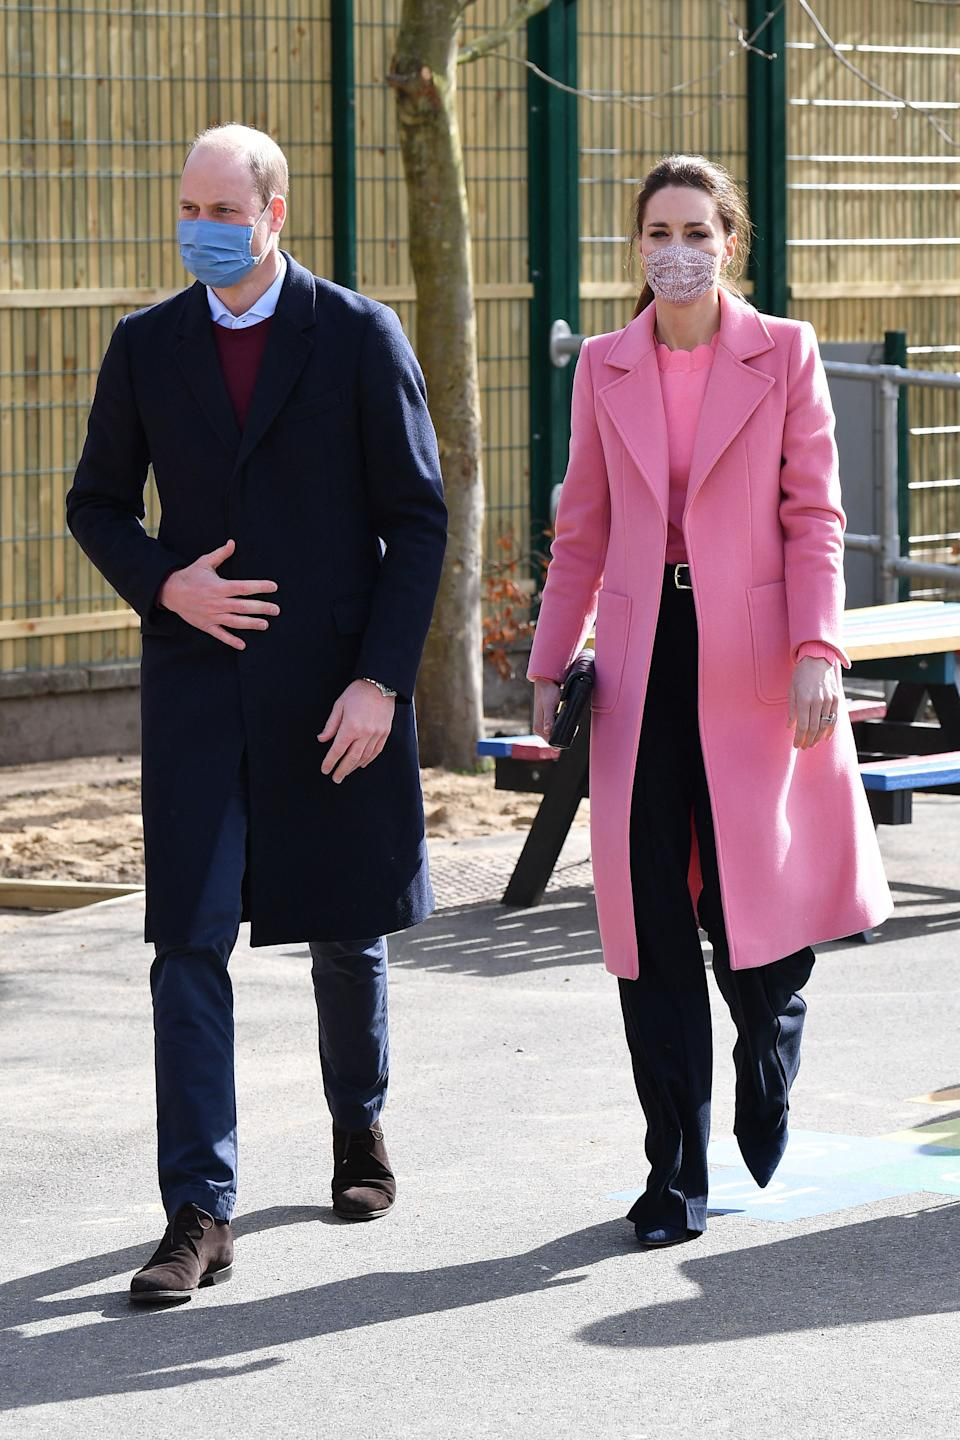 The Duke and Duchess of Cambridge visited School21 following its re-opening after the easing of coronavirus lockdown restrictions in east London on 11 March, 2021. (Getty Images)